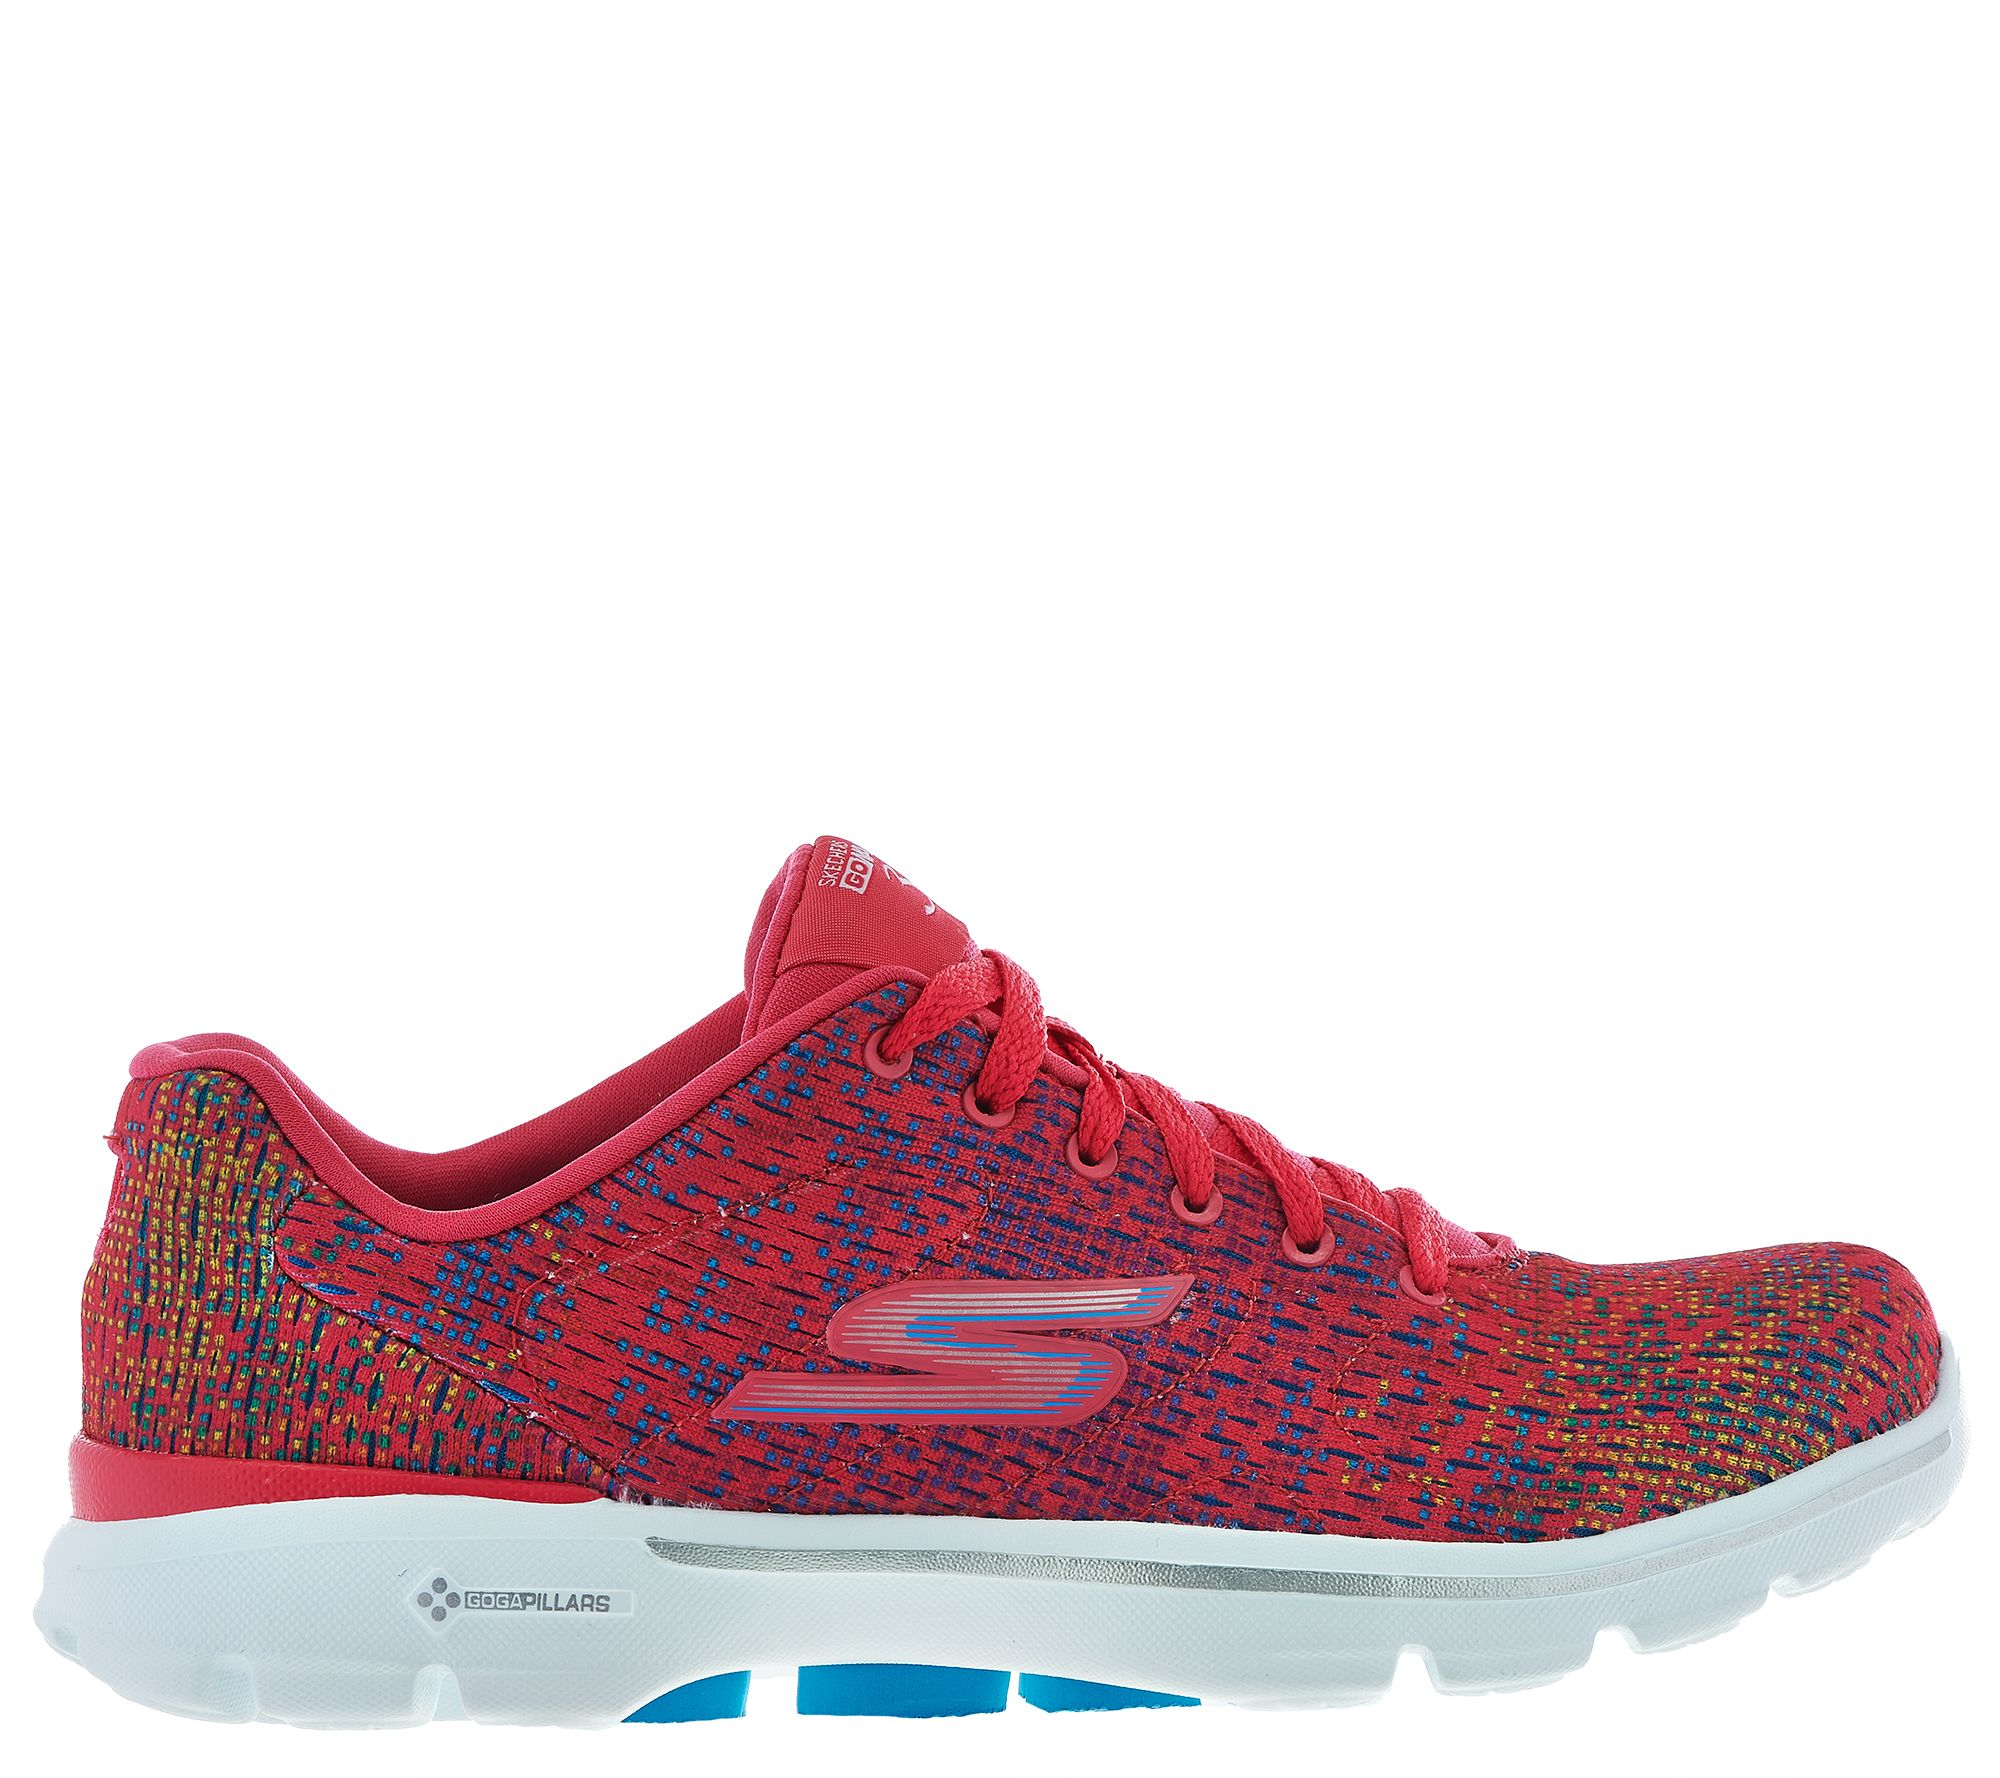 Skechers GO Walk 3 Printed Lace up Sneakers Digitize —